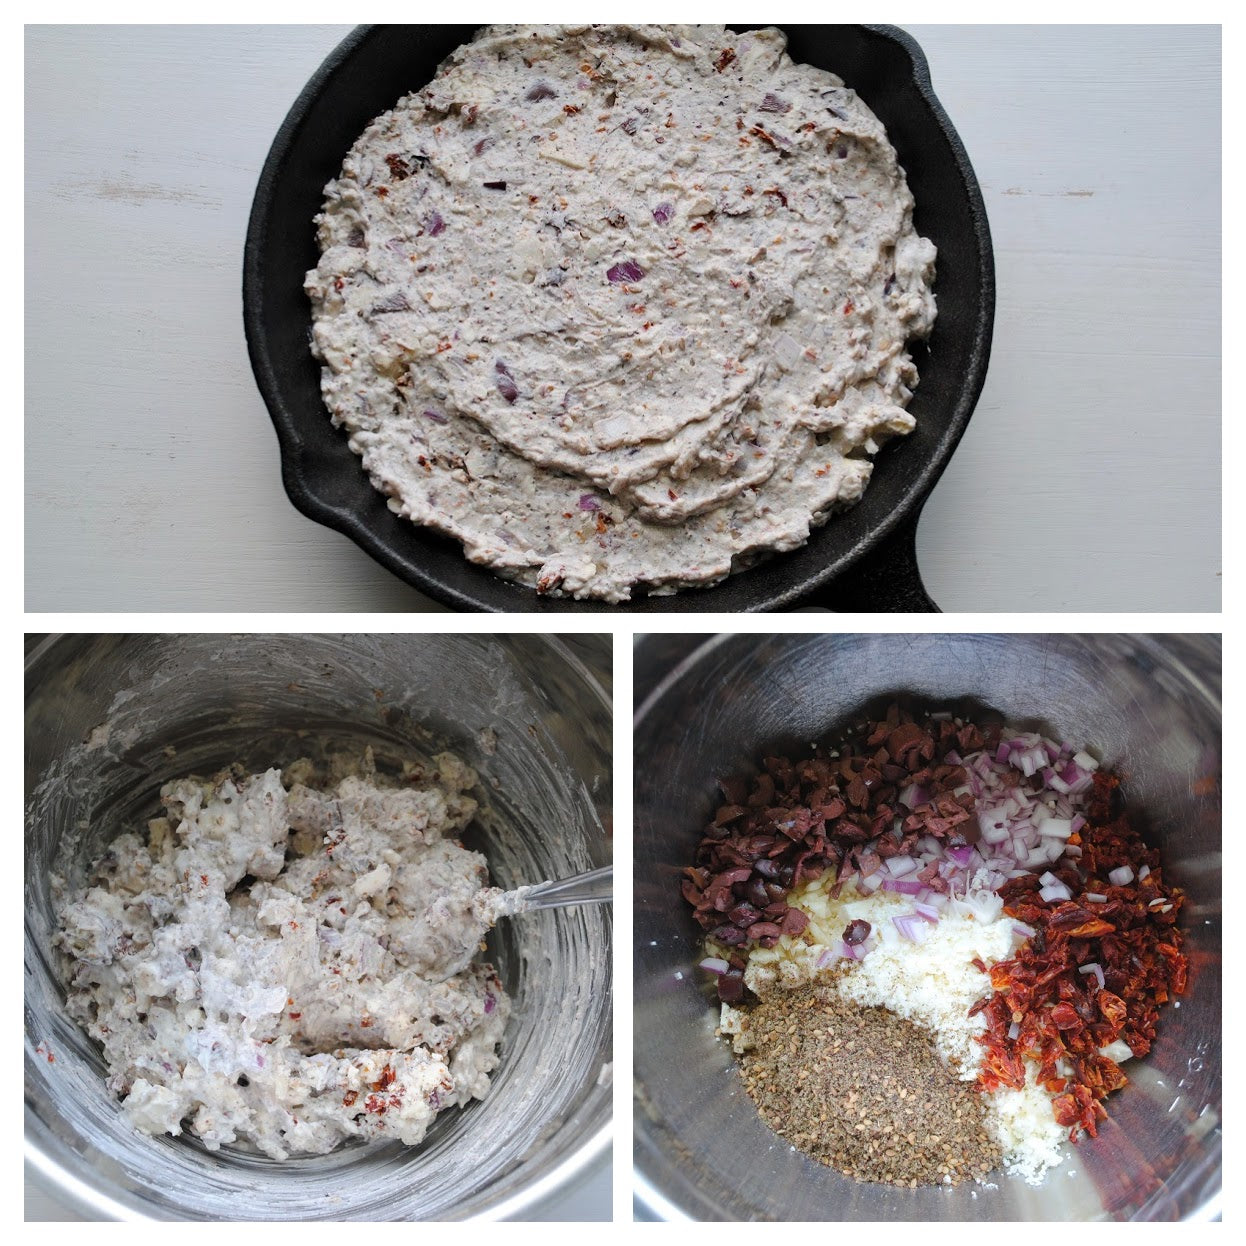 Zaatar Spiced Baked Feta Dip Recipe - Ingredients in a bowl ready to mix